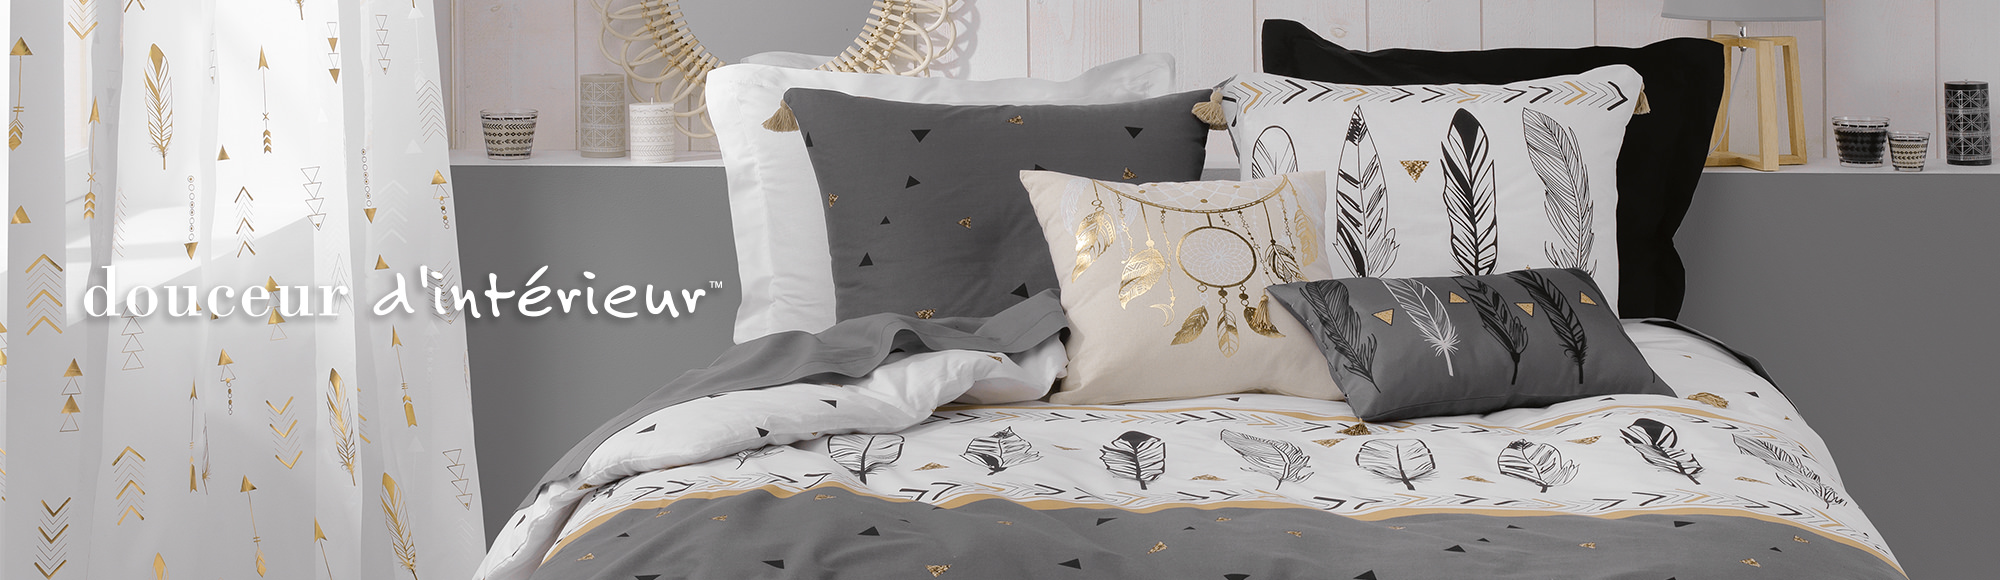 U10 – Douceur d'intérieur brand – bed linen – Boho chic theme – bedroom decoration